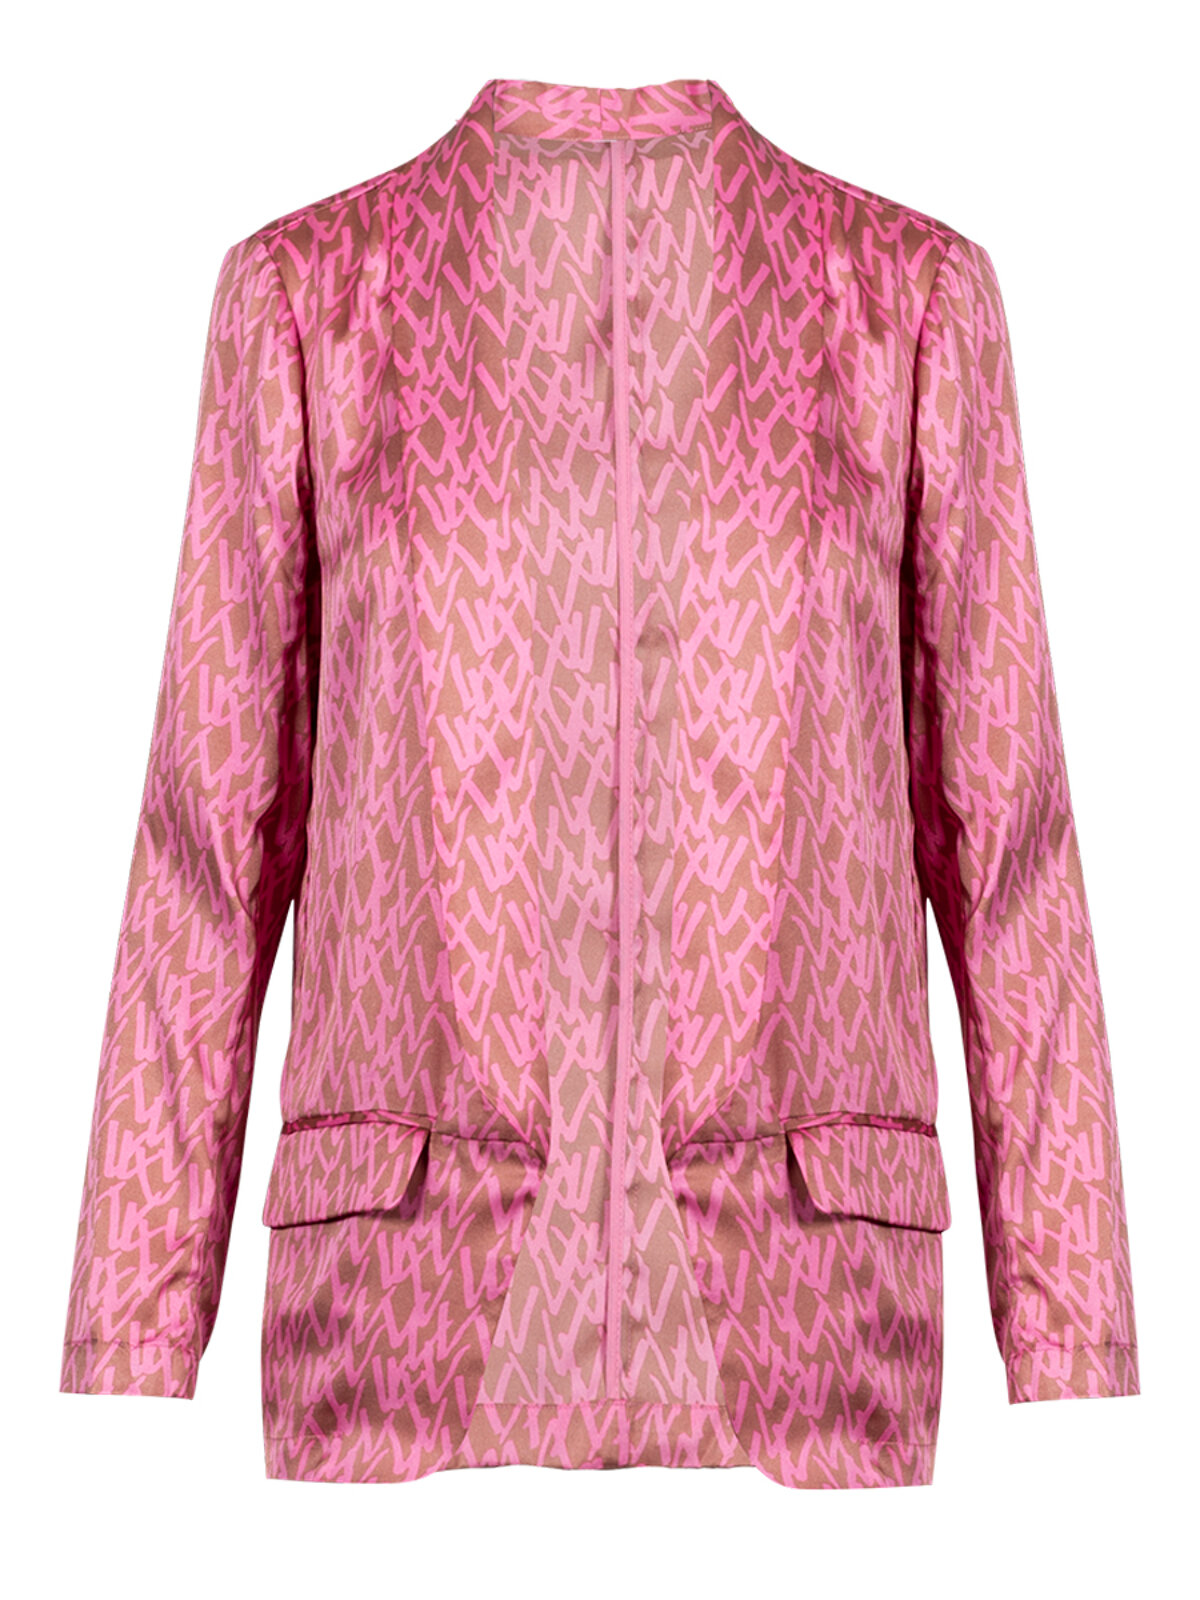 Giulia M/L Swift Jacket - Anonyme Designers